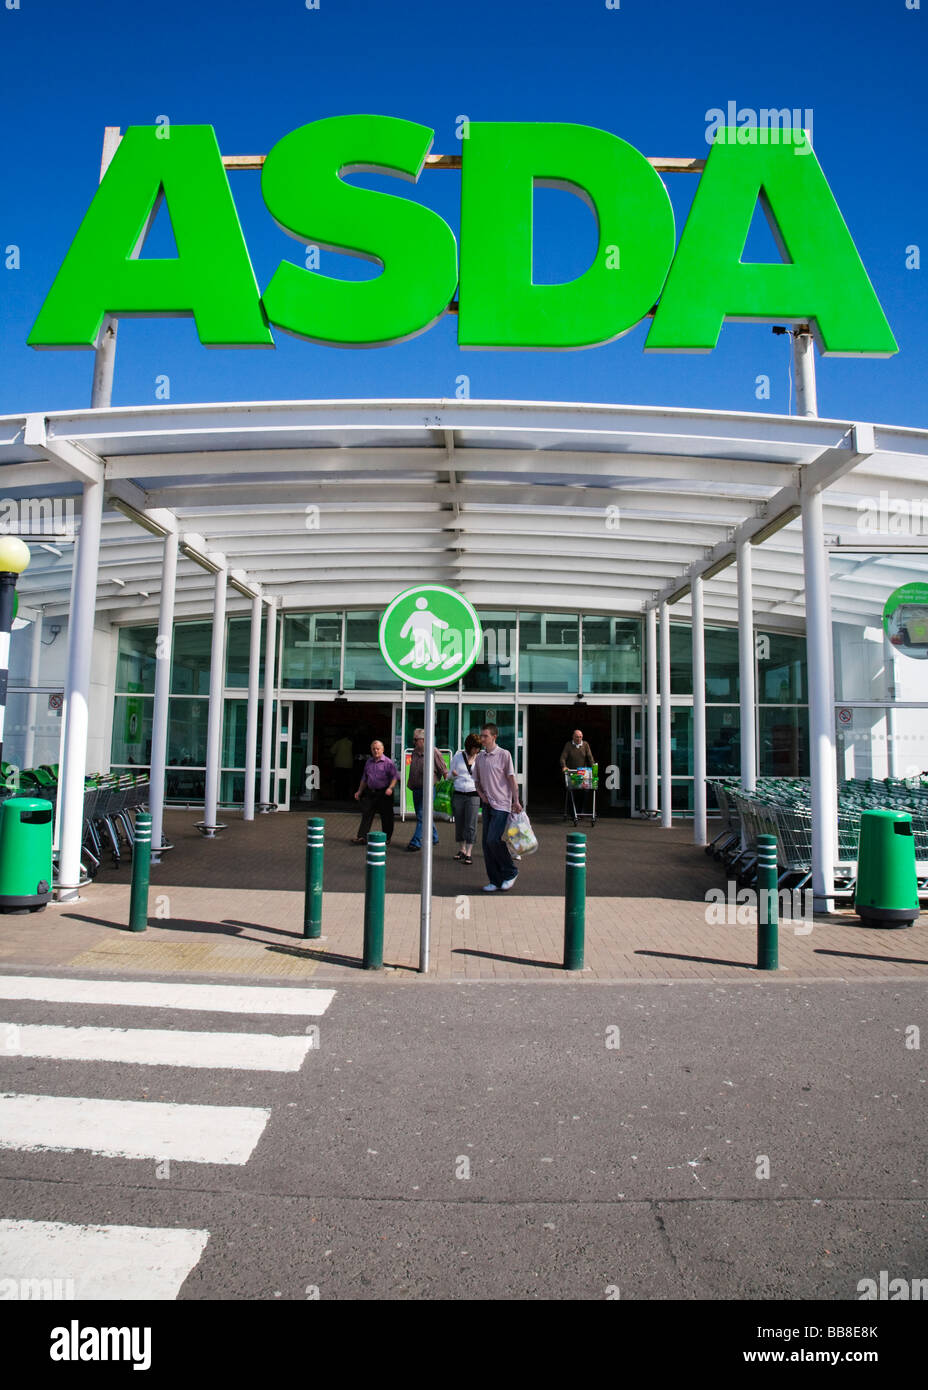 Entrance to the Asda store at Dumbarton, West Dumbartonshire, Scotland. - Stock Image